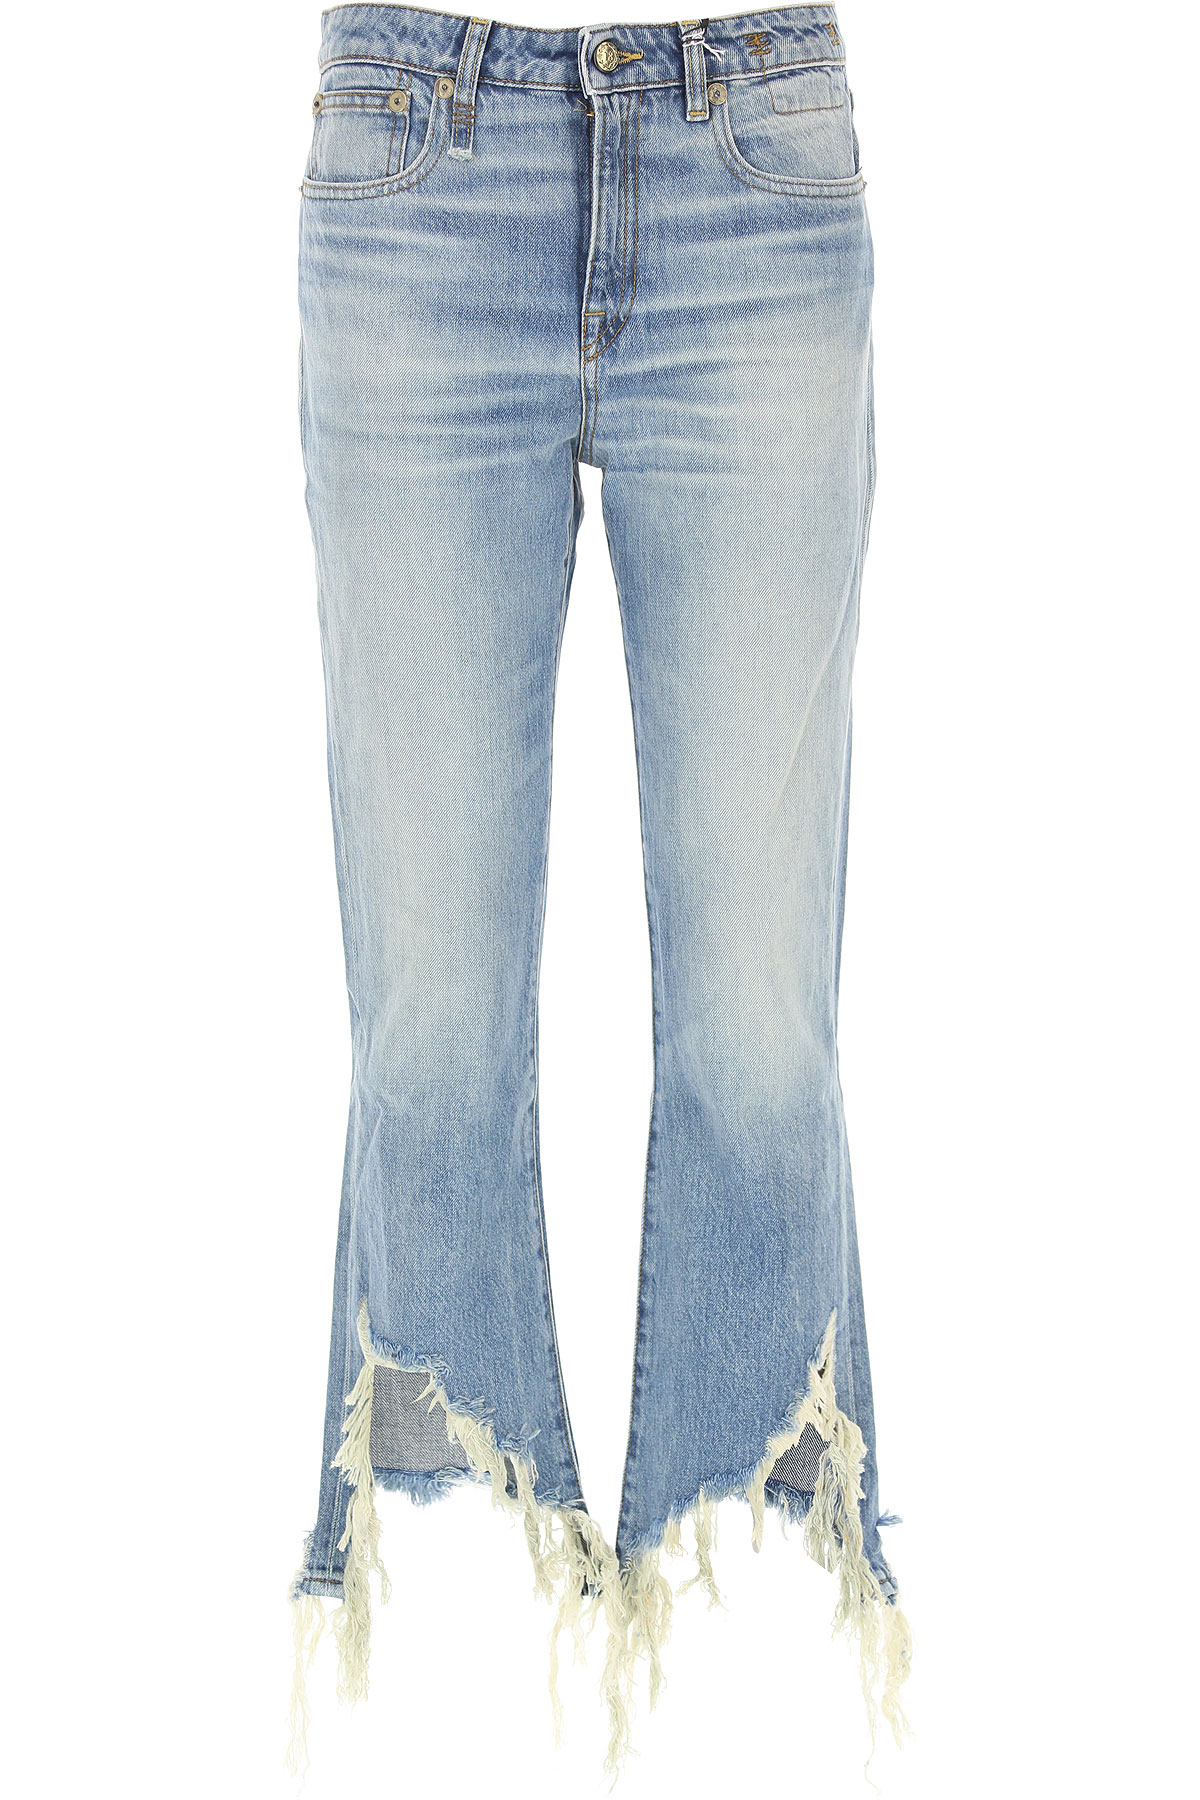 Image of R13 Jeans, Denim Light Blue, Cotton, 2017, 26 28 30